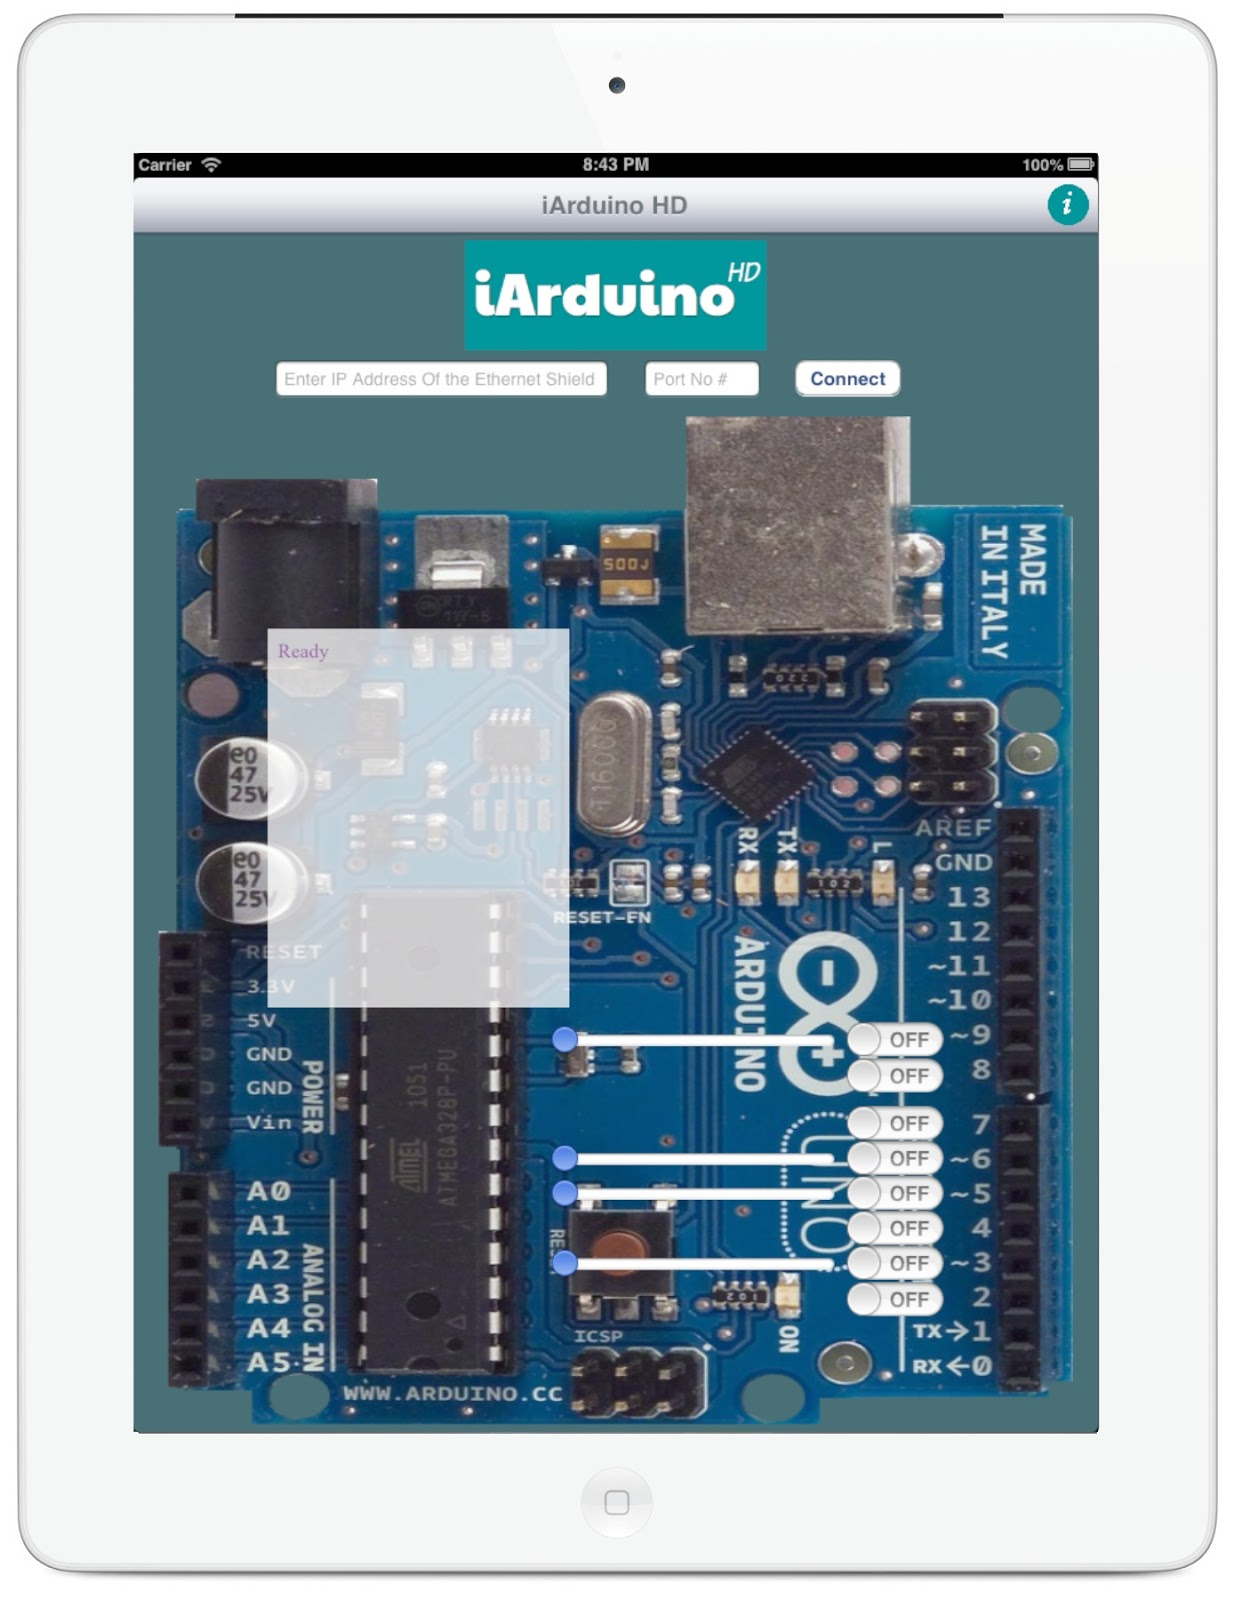 Hid usb on arduino